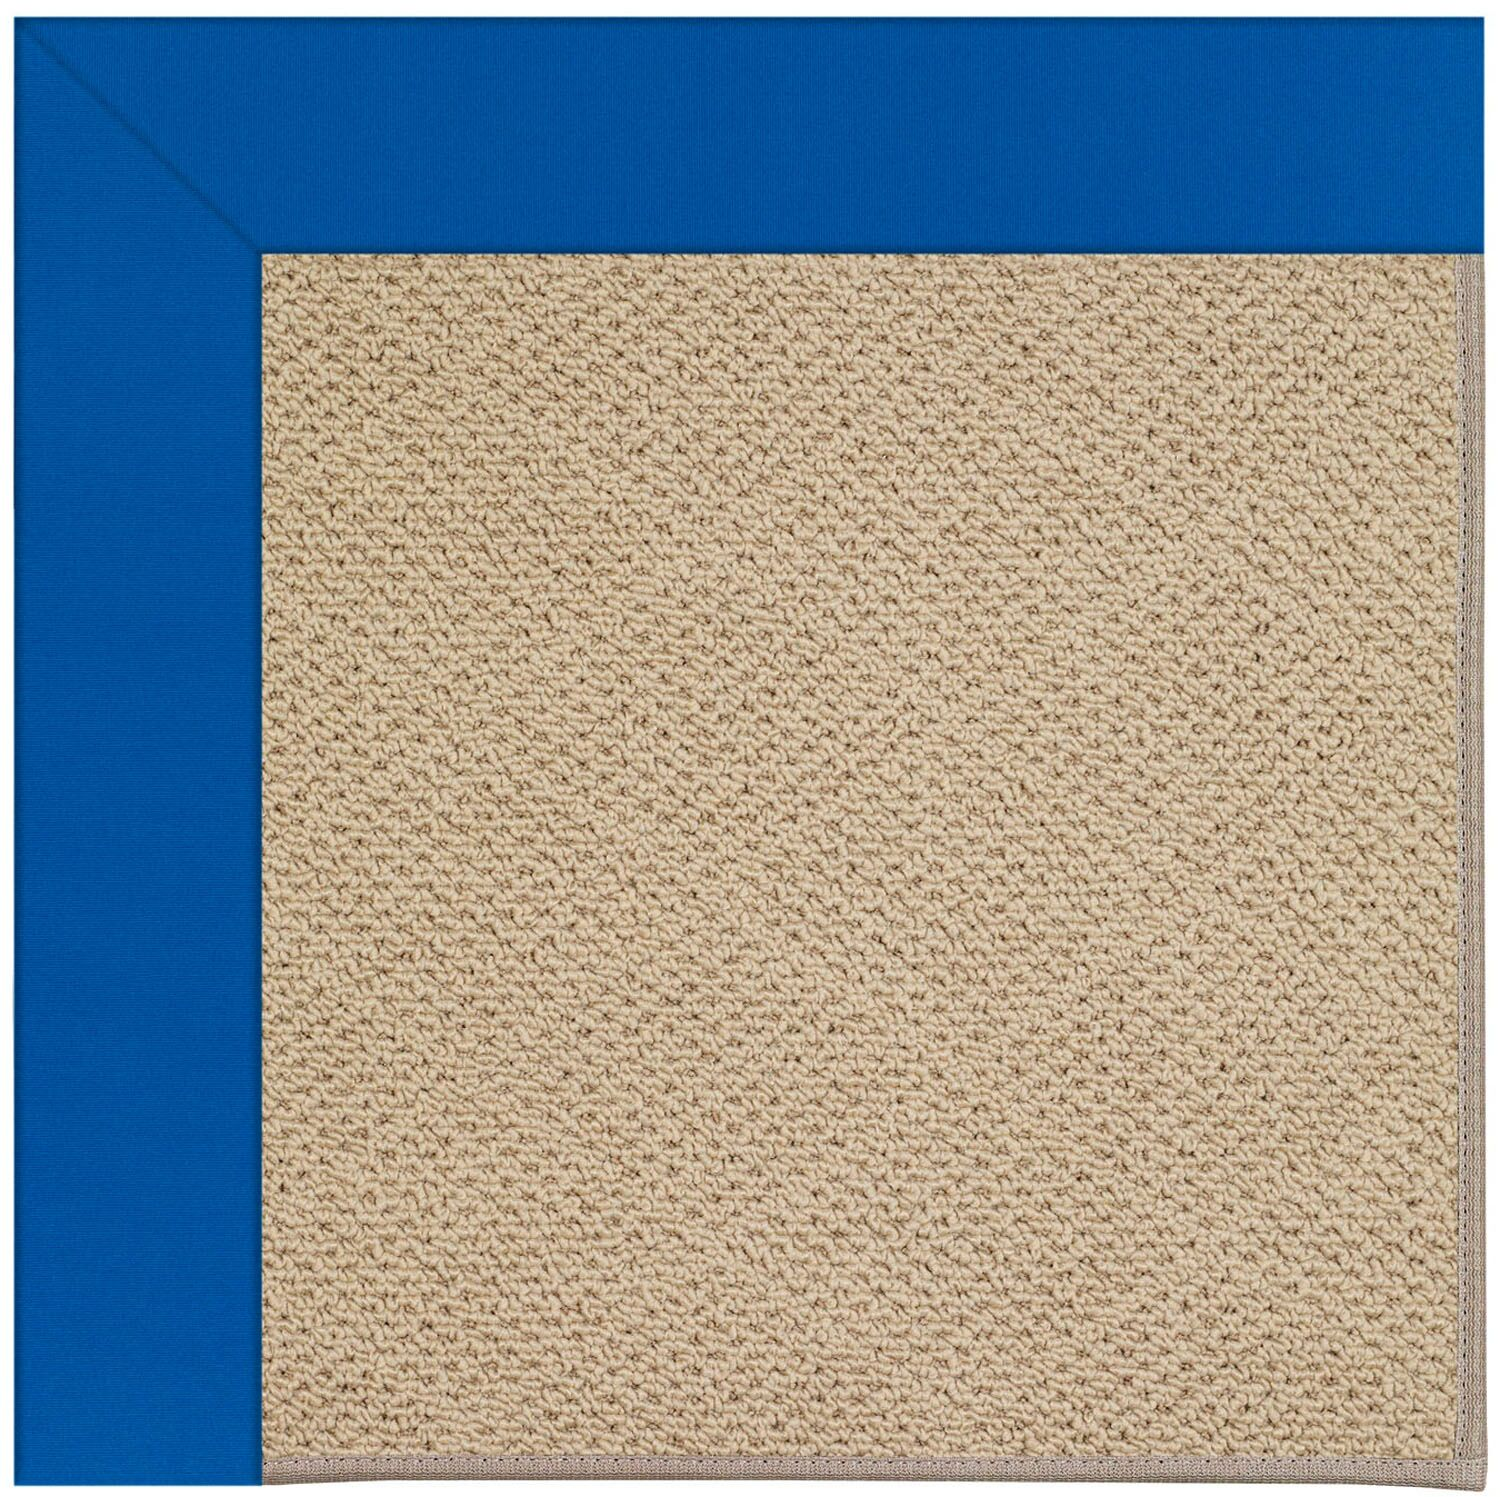 Lisle Machine Tufted Reef Blue/Brown Indoor/Outdoor Area Rug Rug Size: Rectangle 8' x 10'